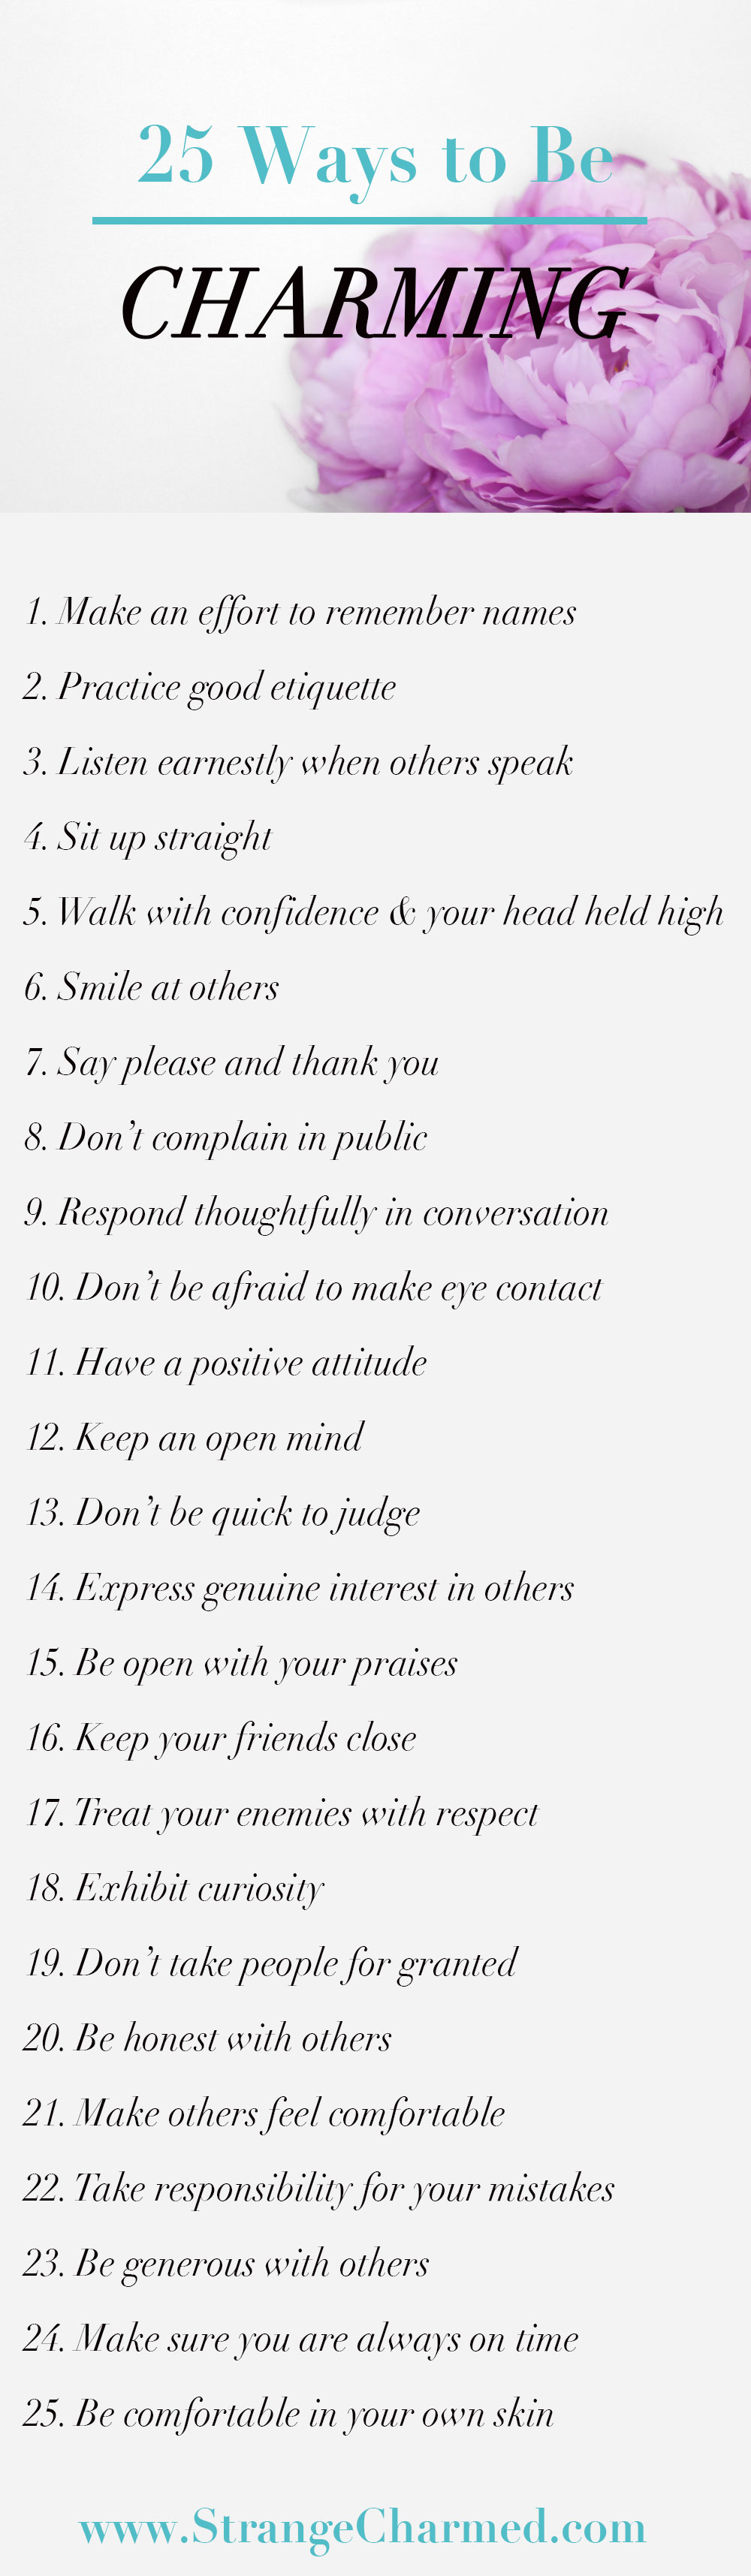 25 Ways to be Charming